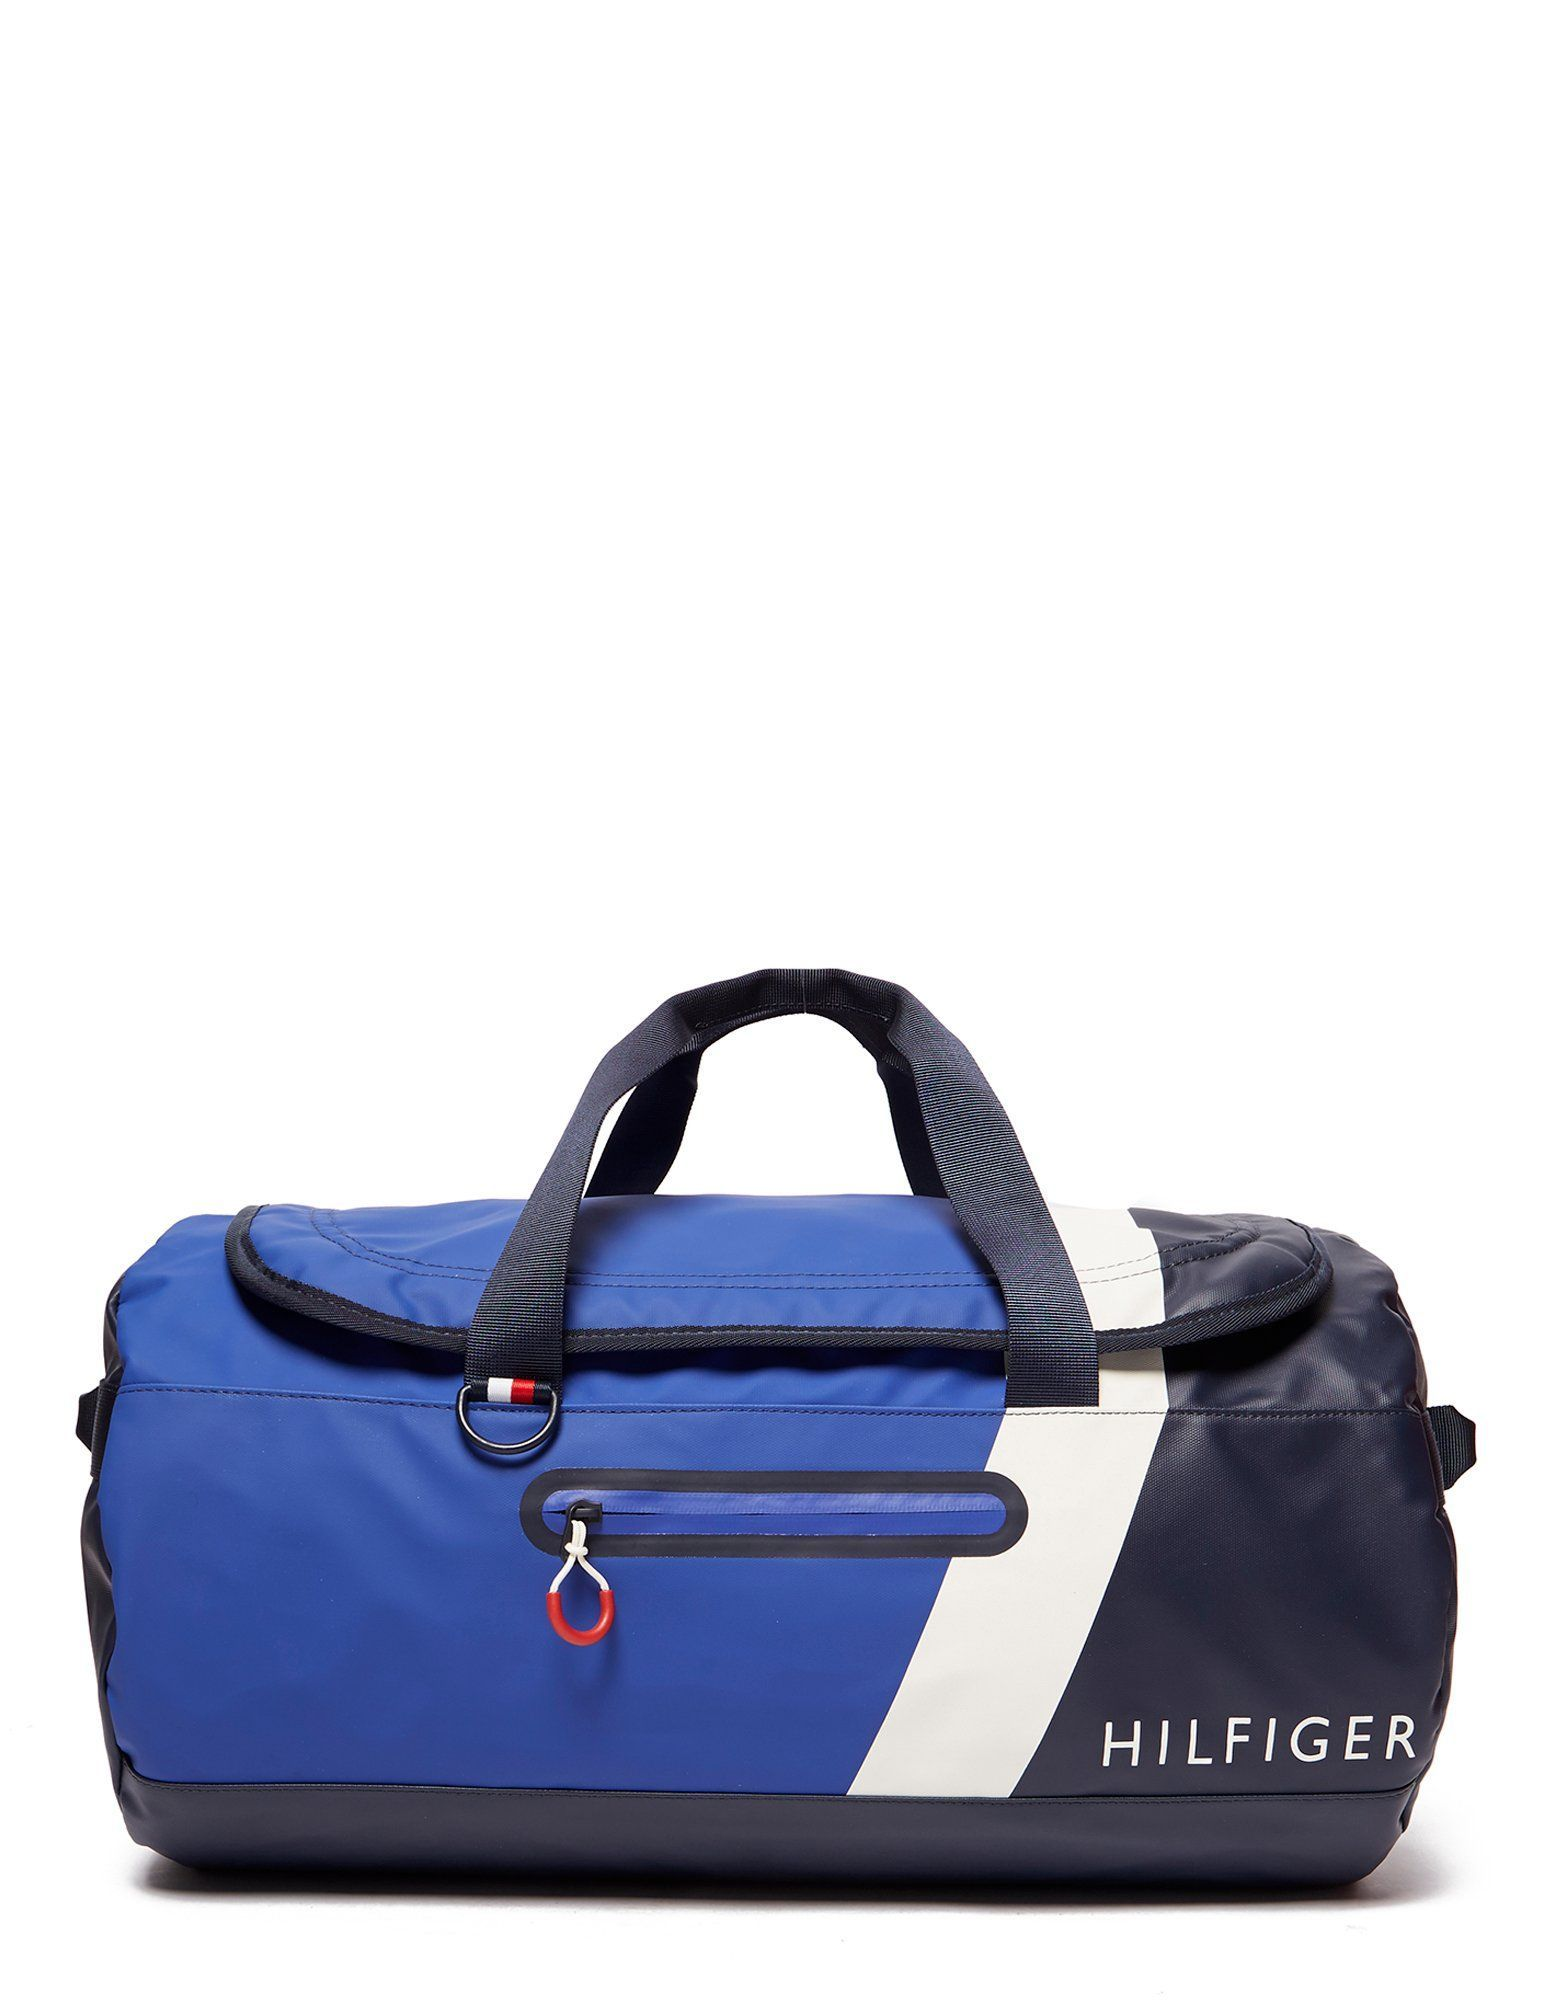 040d9918d8 Tommy Hilfiger Colourblock Duffle Bag - Shop online for Tommy Hilfiger  Colourblock Duffle Bag with JD